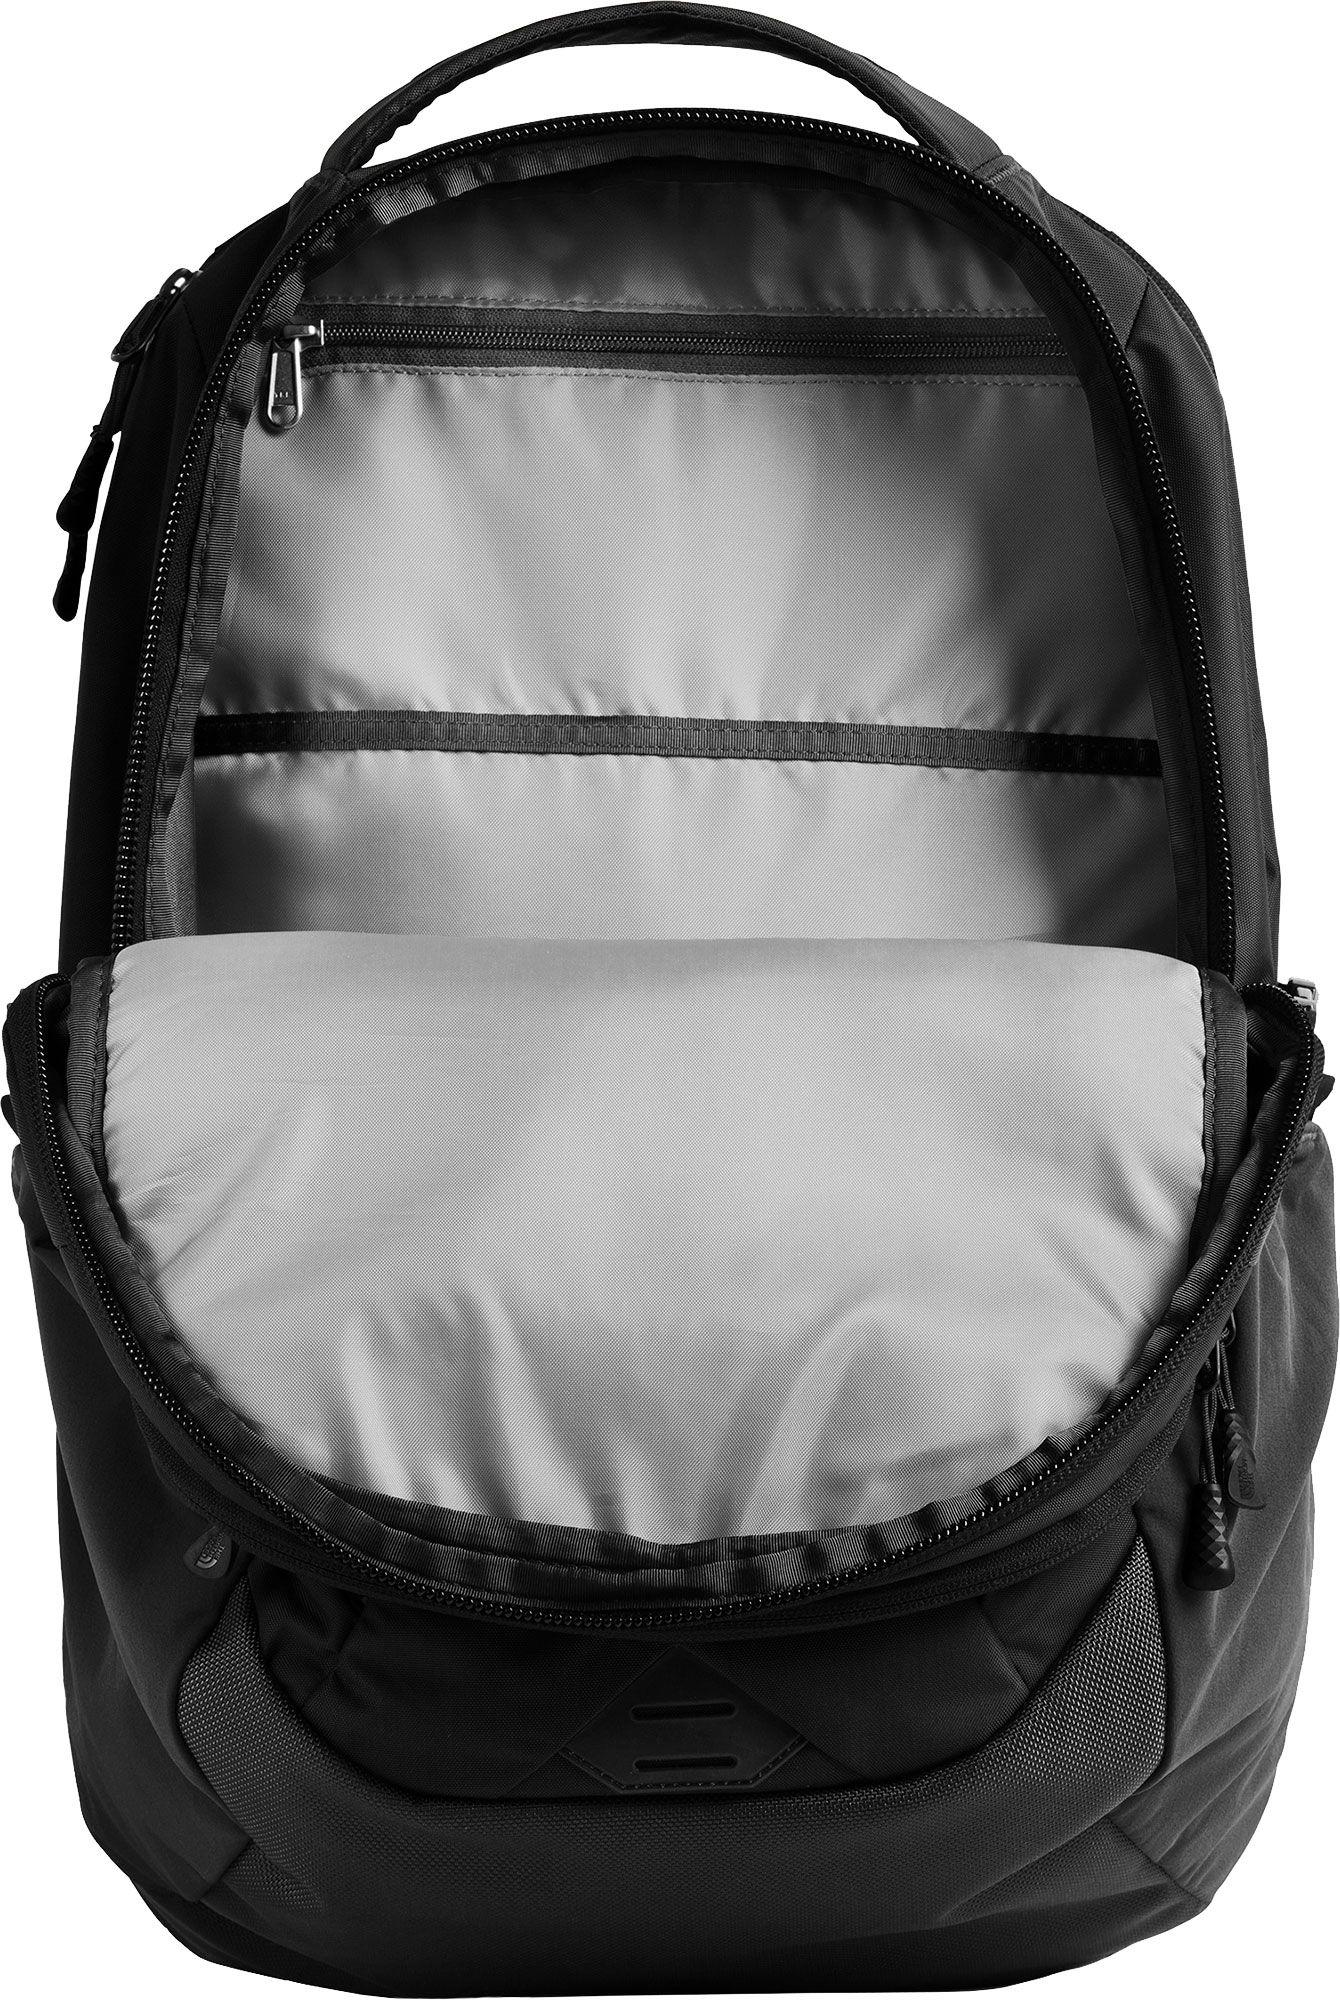 6fe18065d30 Lyst - The North Face Surge 18 Backpack in Black for Men